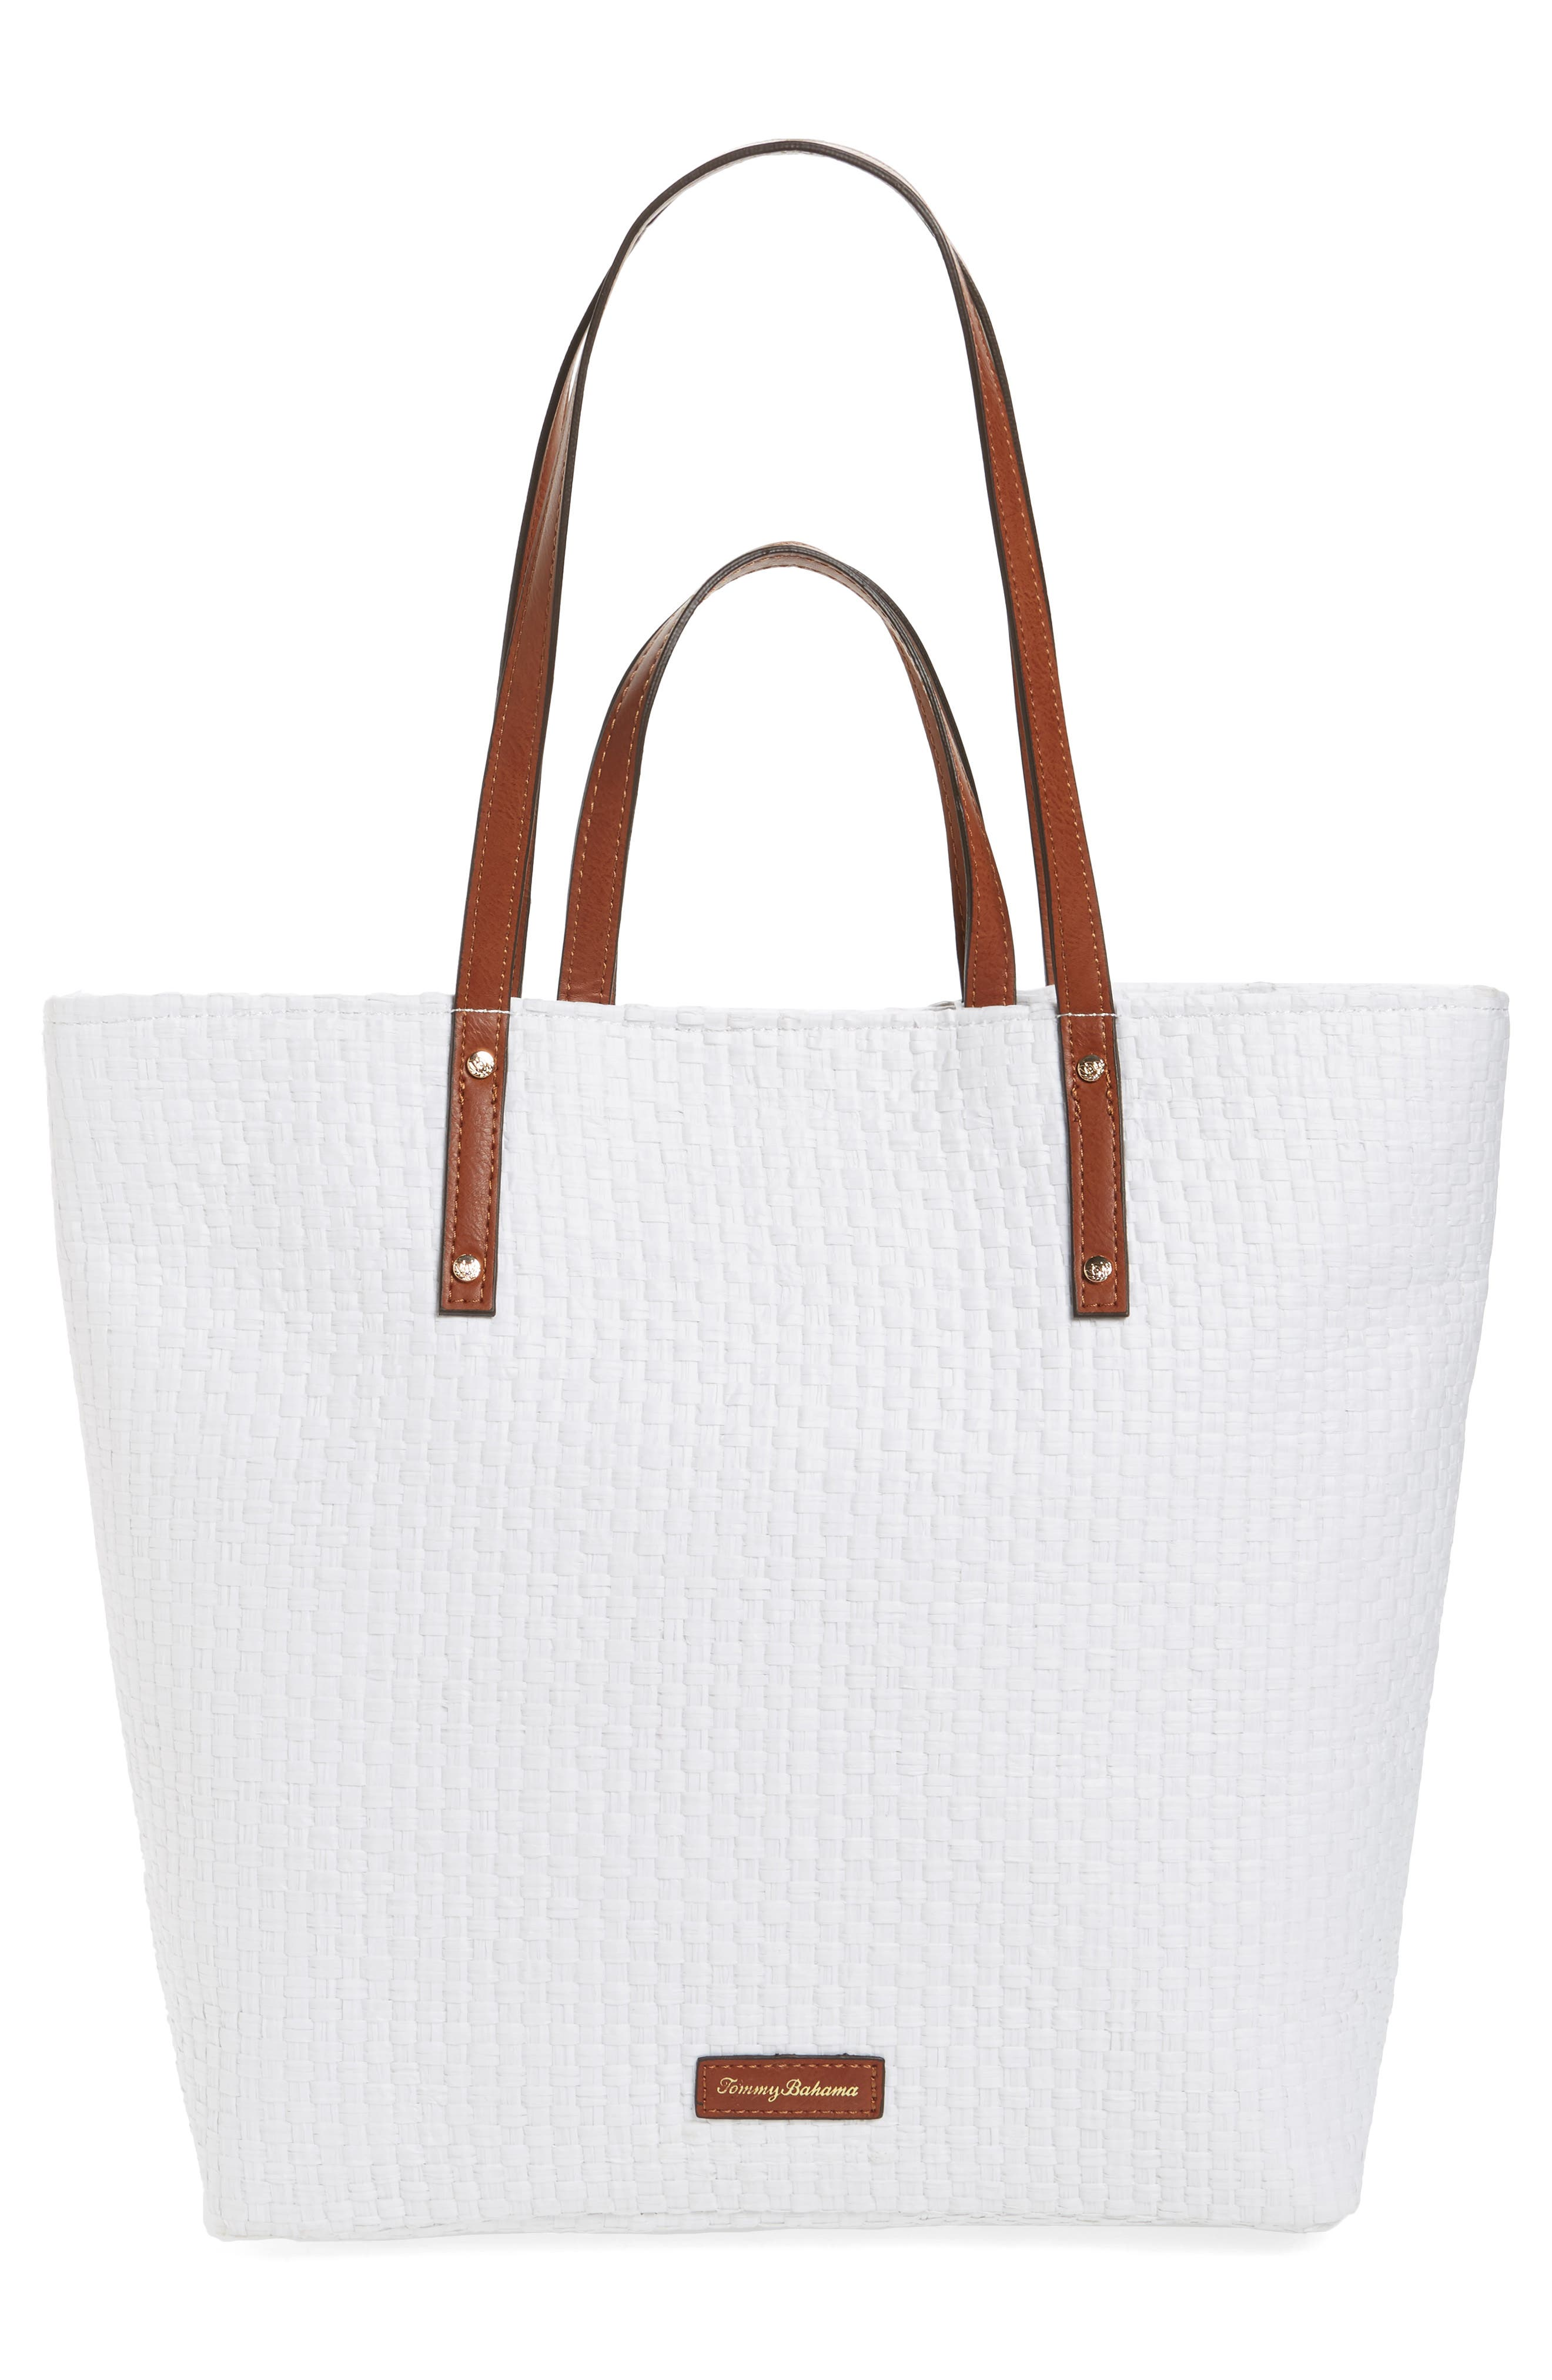 Athen - Seas the Day Embroidered Straw Tote,                             Alternate thumbnail 3, color,                             400